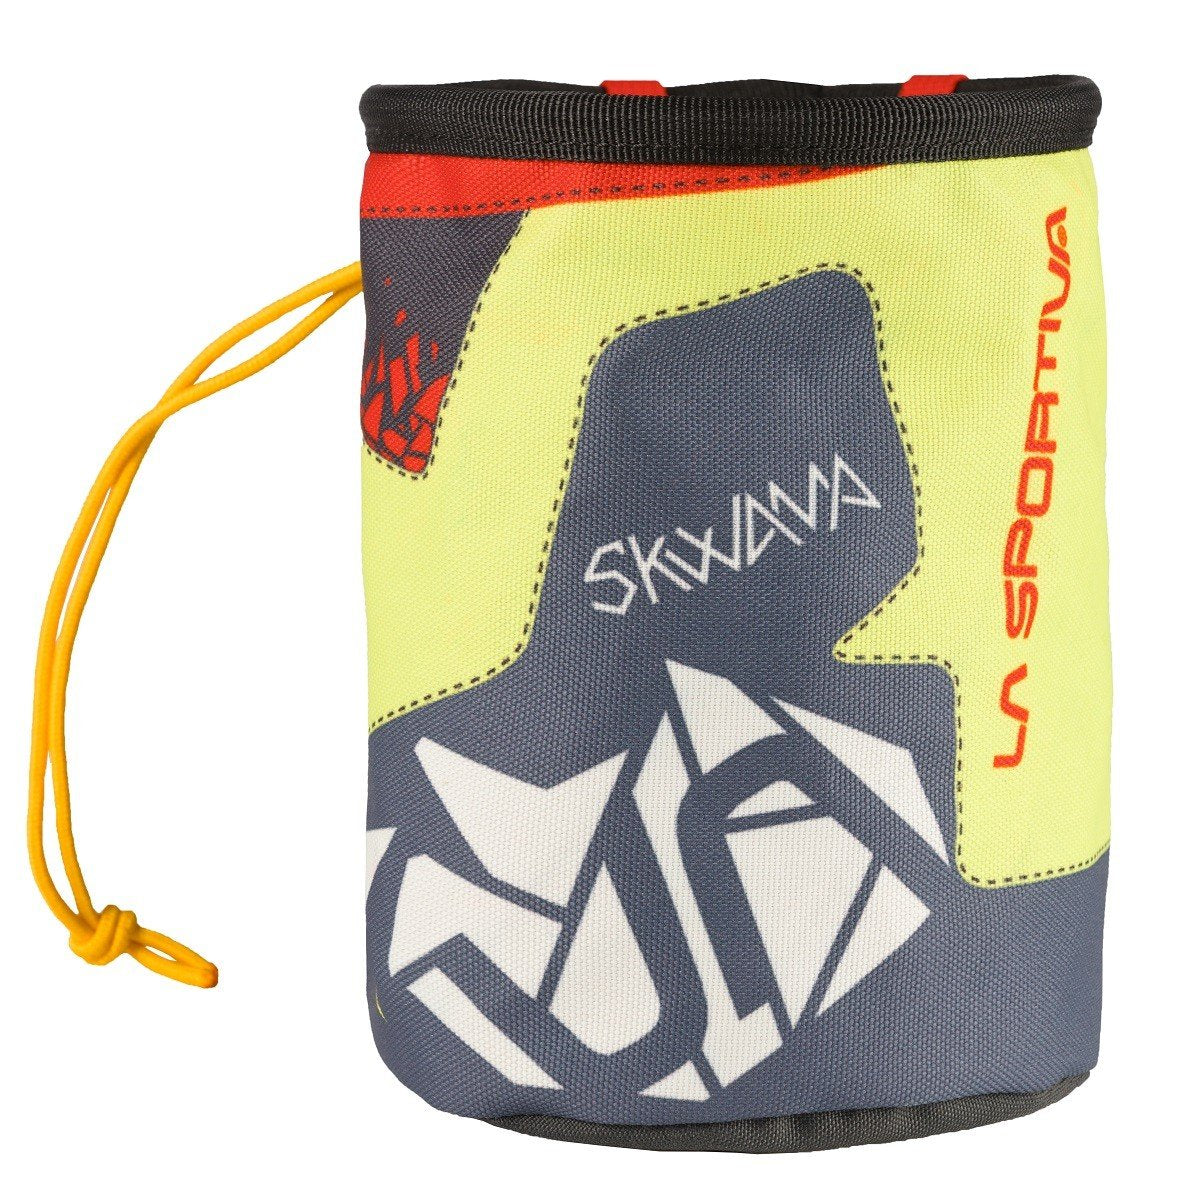 La Sportiva Skwama Chalk Bag, front view in grey, yellow, white and red